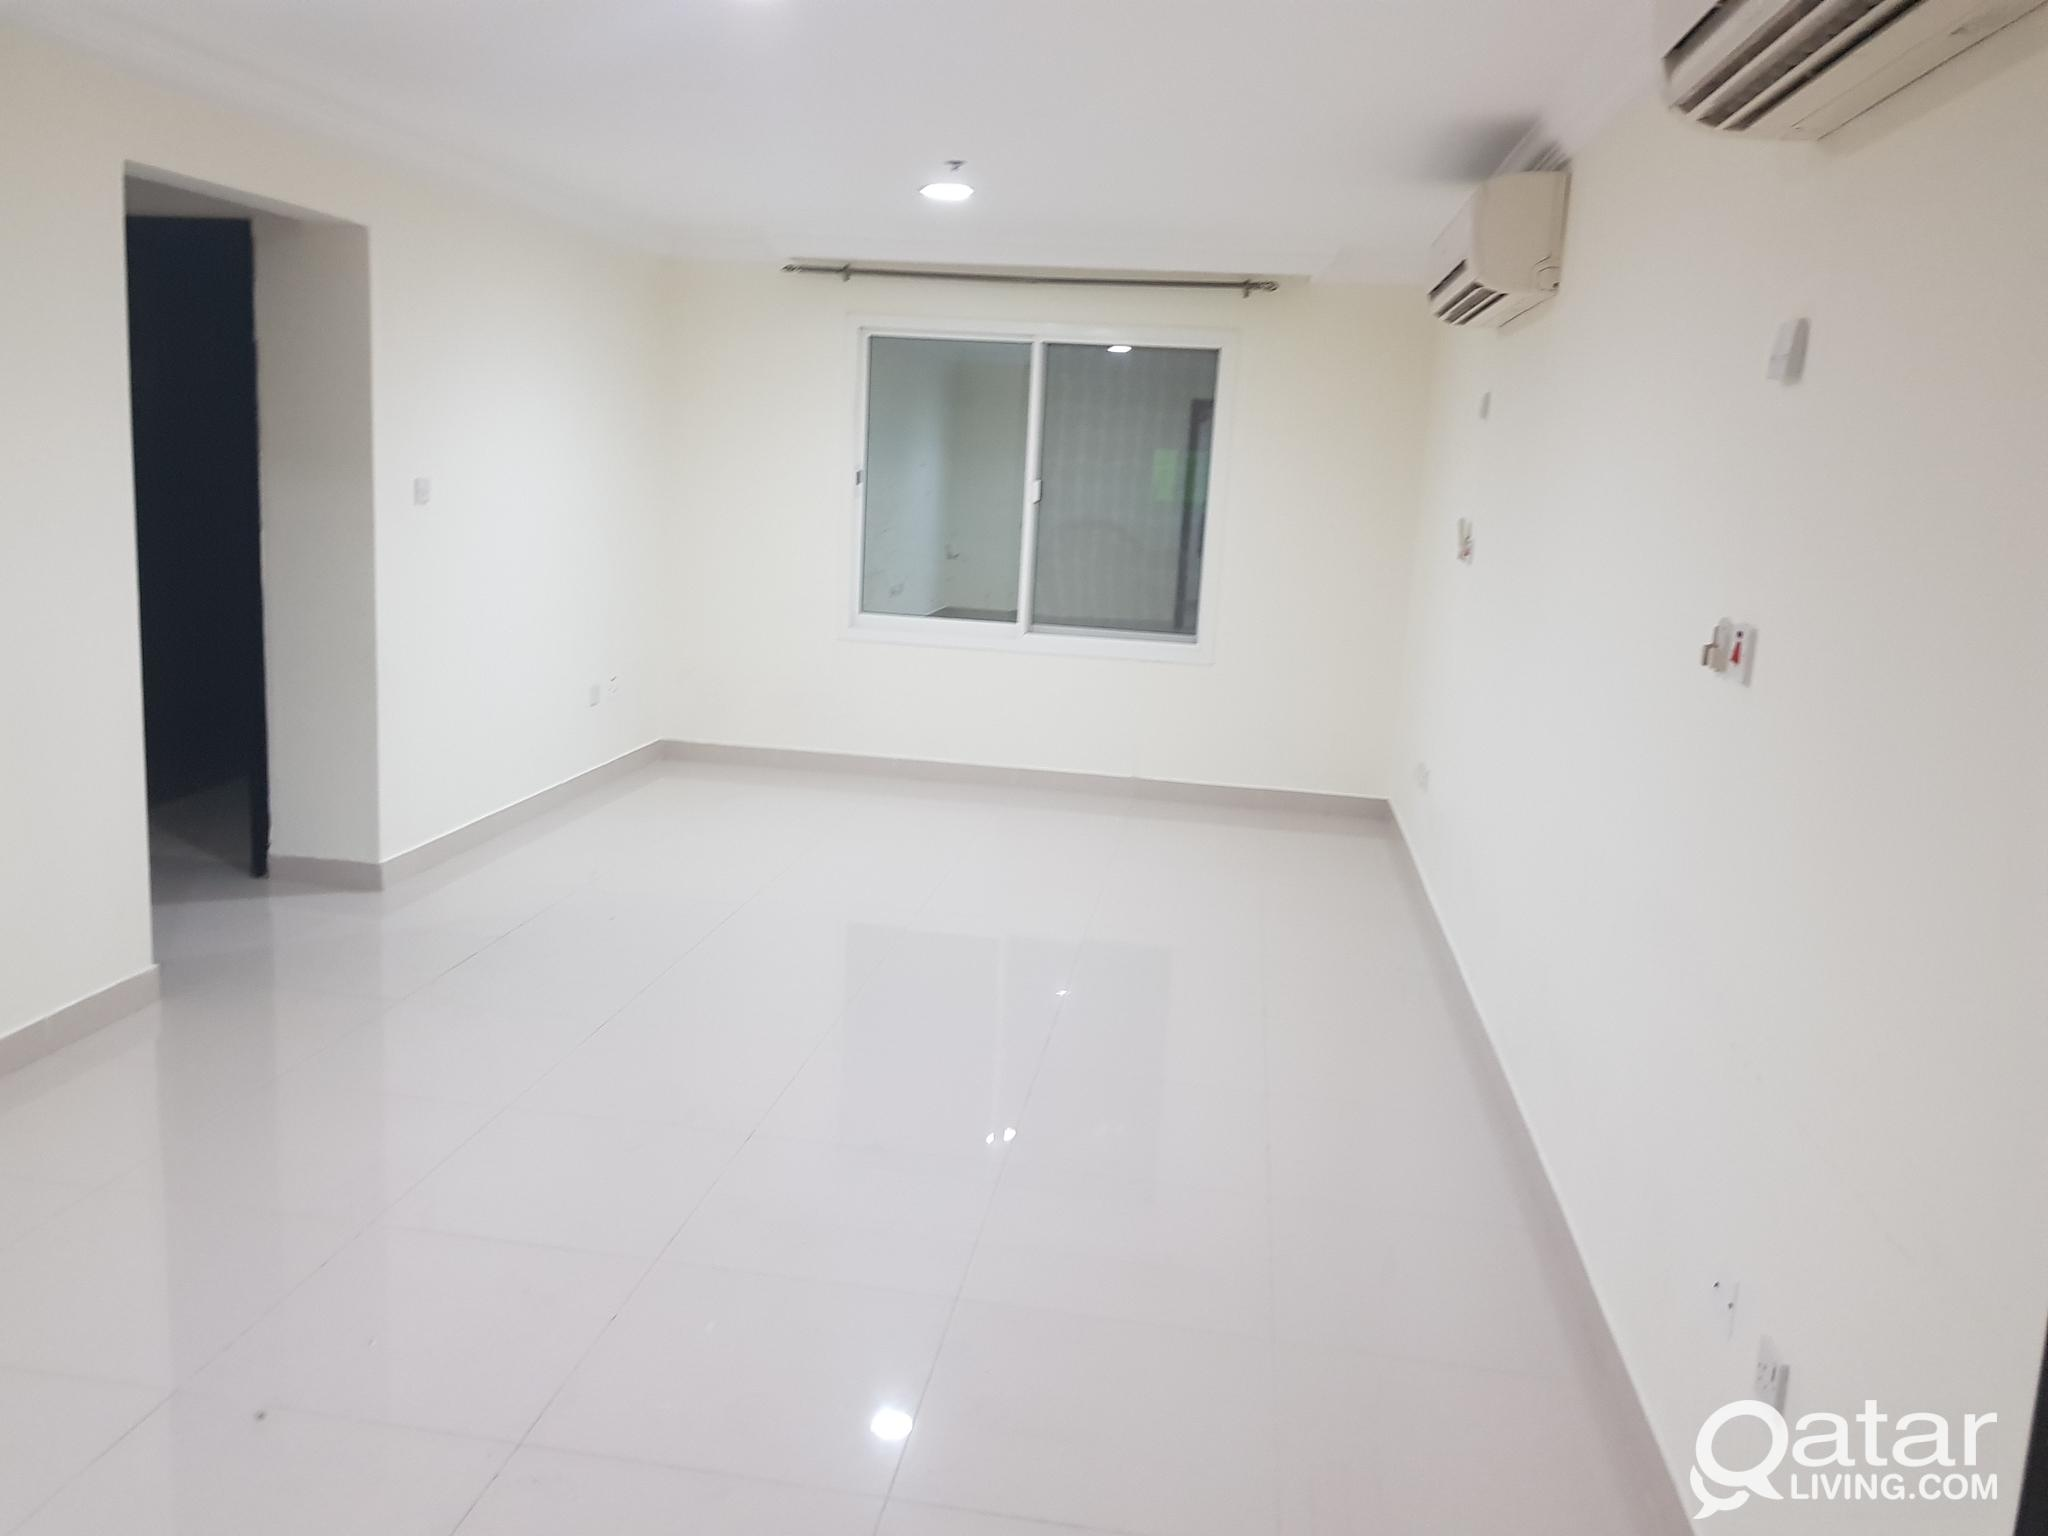 2bhk alnasar opposite mirqab mall spacious 5000 qr